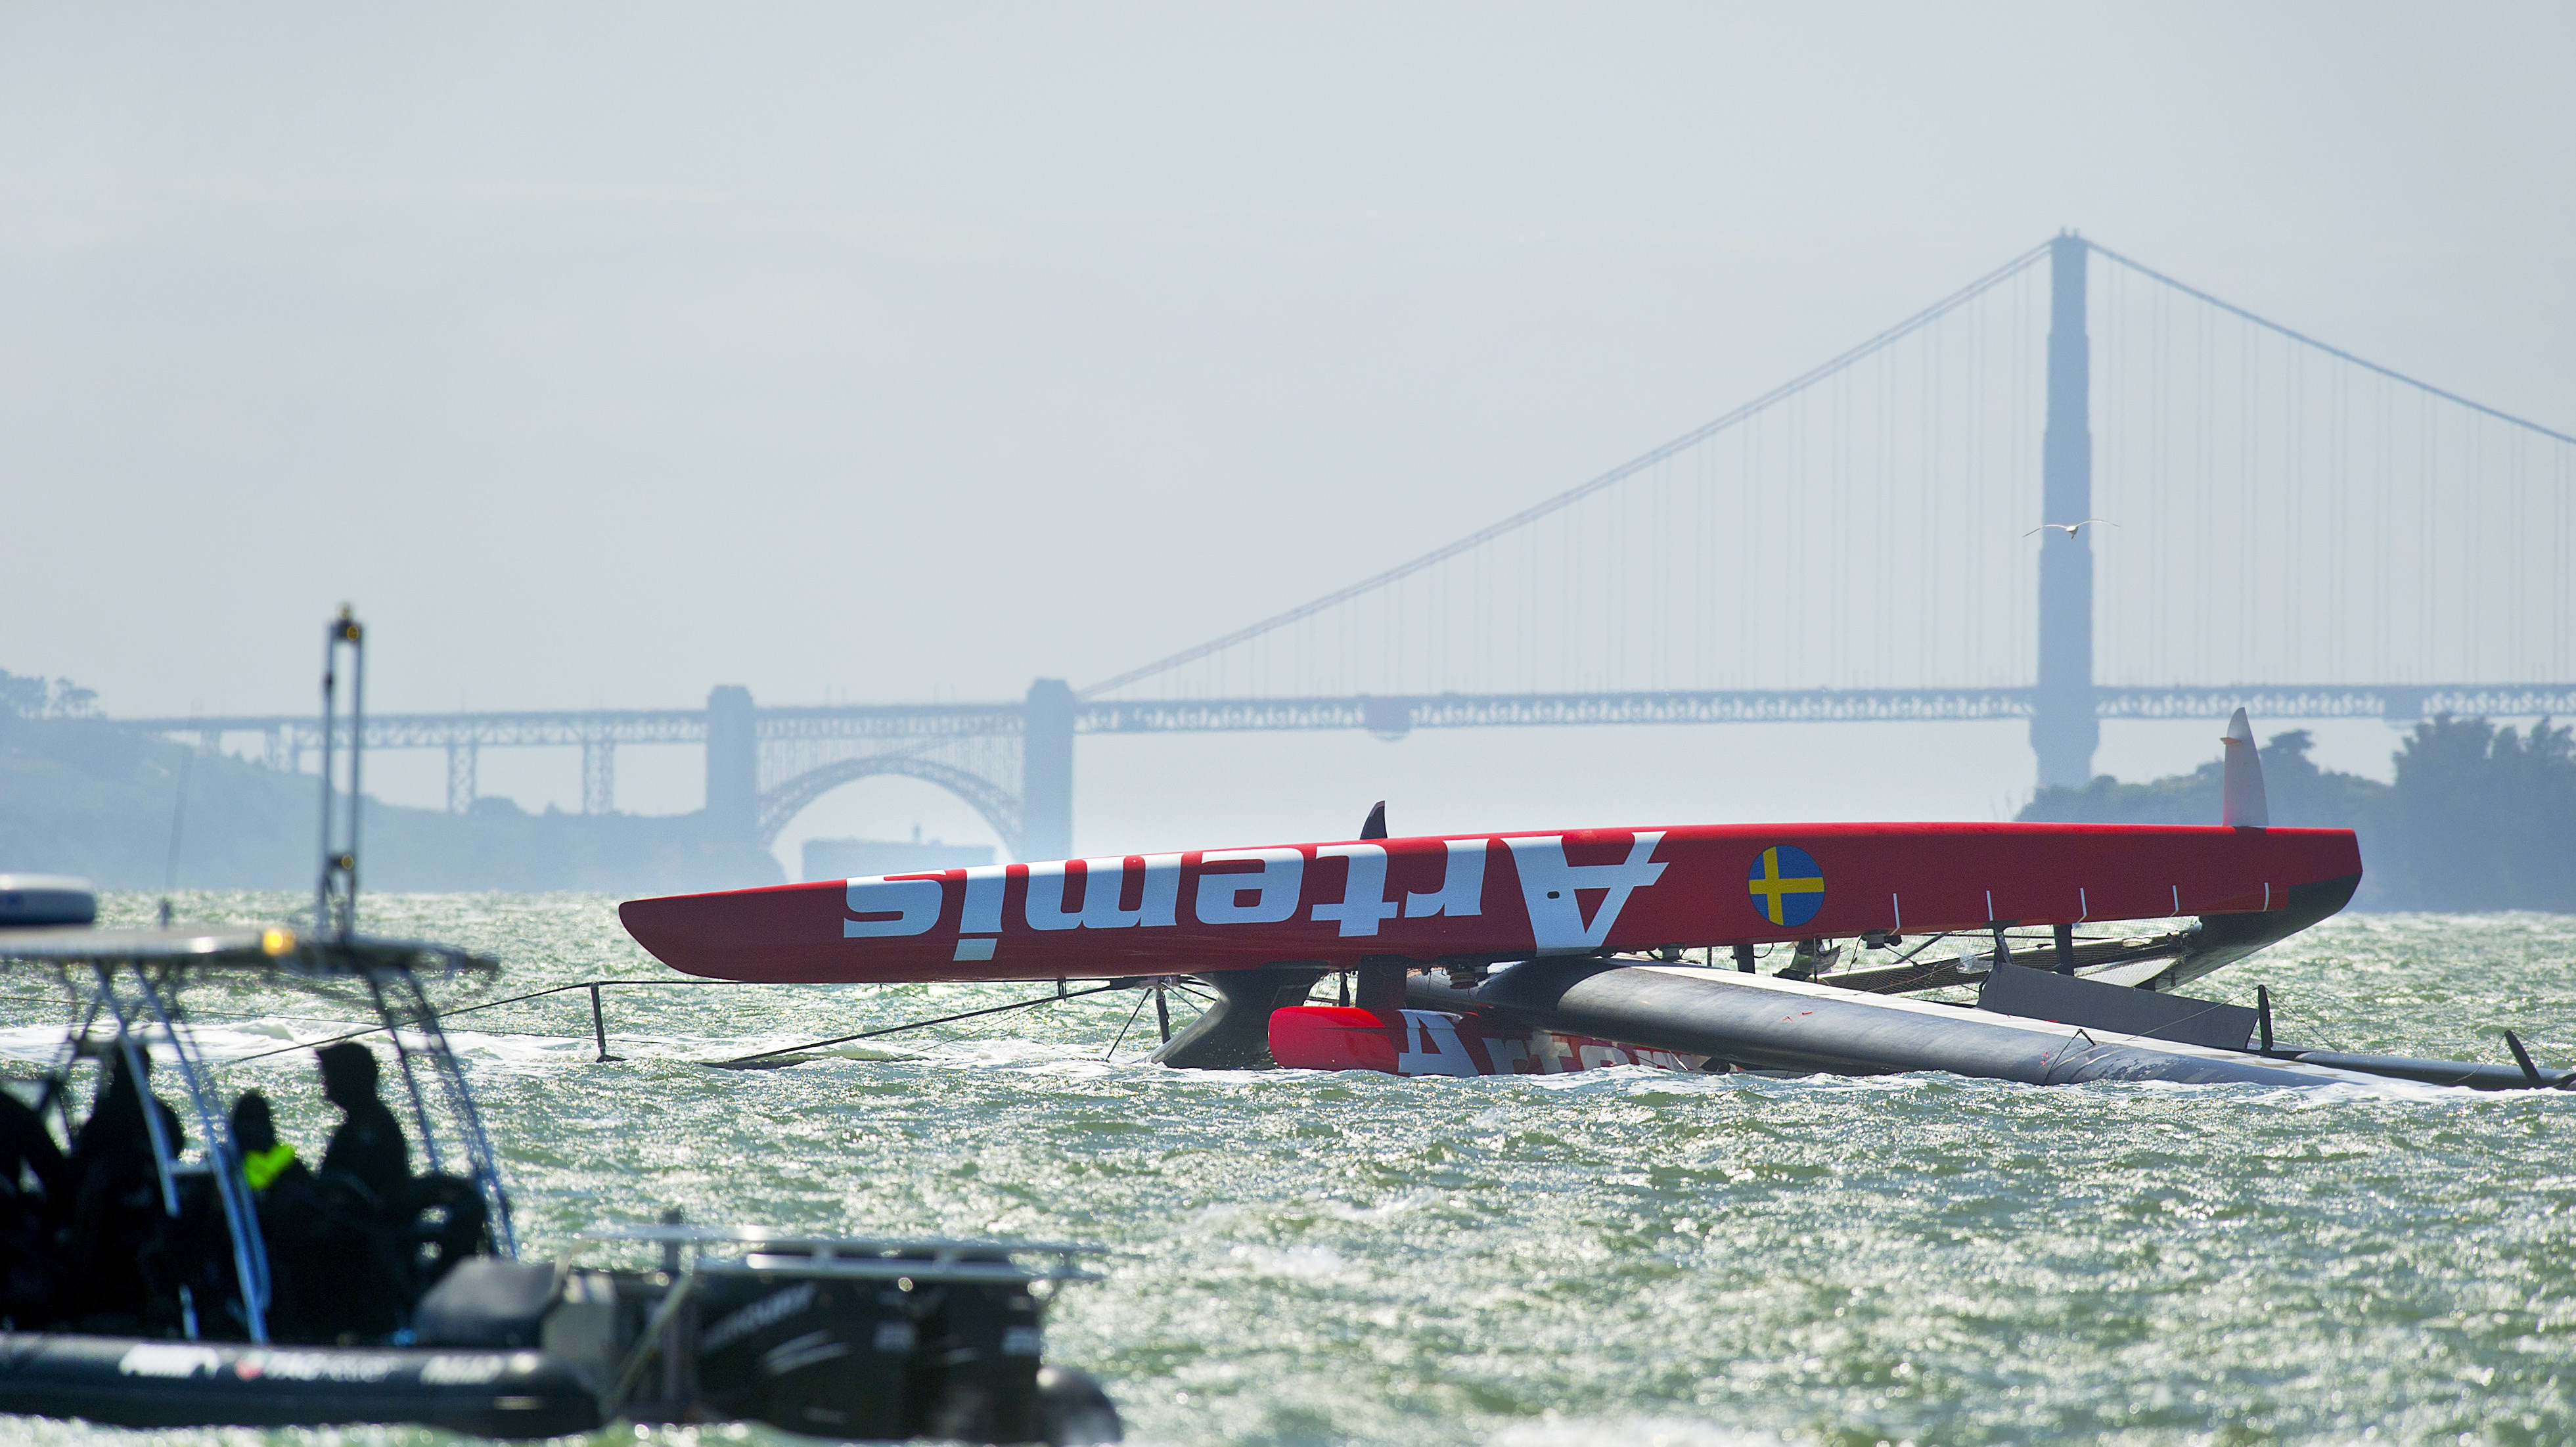 America's Cup Death Raises Concerns Over High-Tech Race Boats